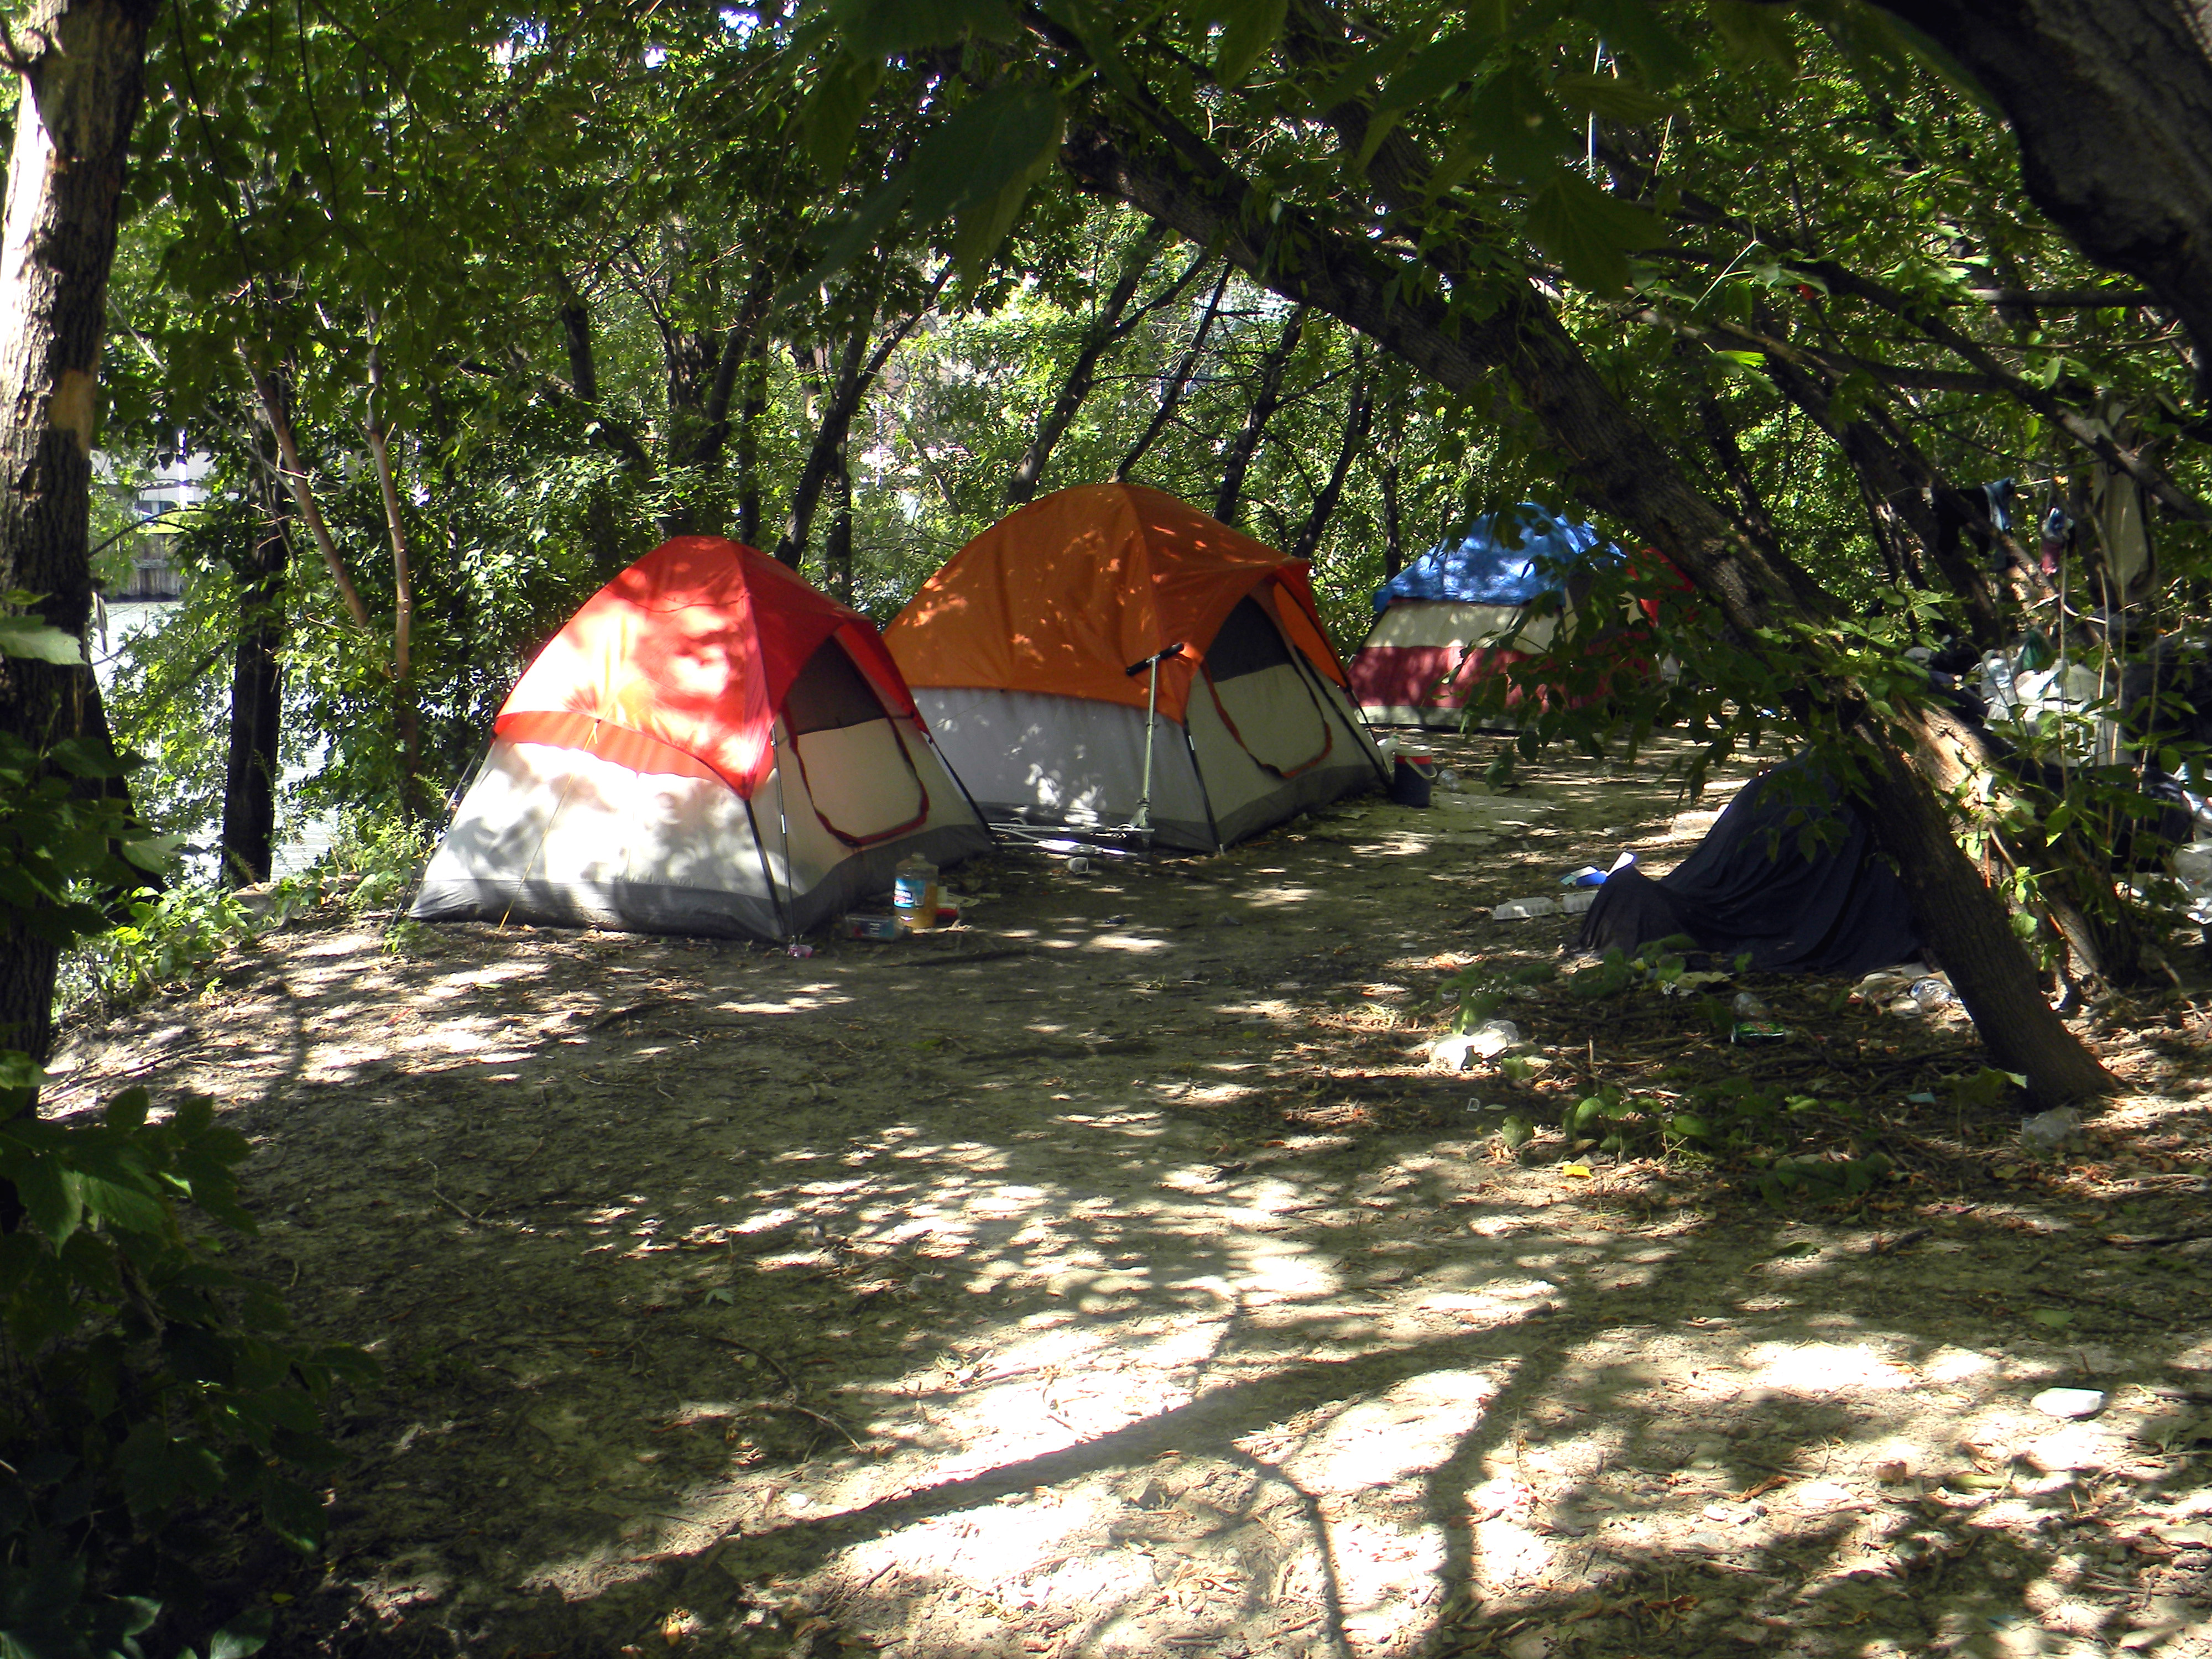 People Live in Tents in the Sloop on the Chicago River? & Sloopin - A South Loop Blog: Oh...People Live in Tents in the ...